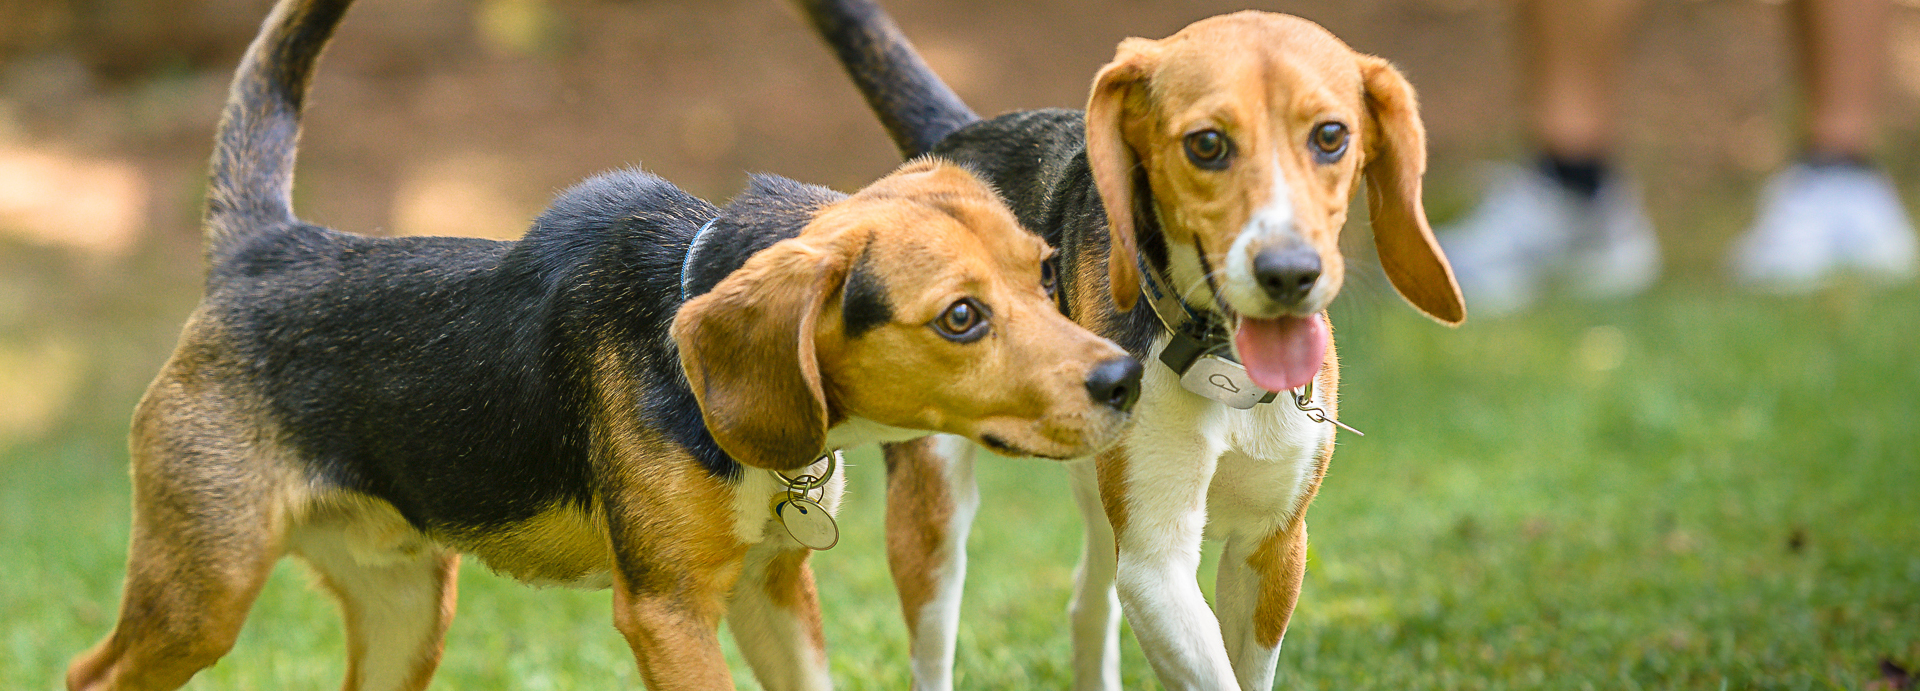 Grounds and Hounds Rescue Roast initiative partners with Beagle Freedom Project